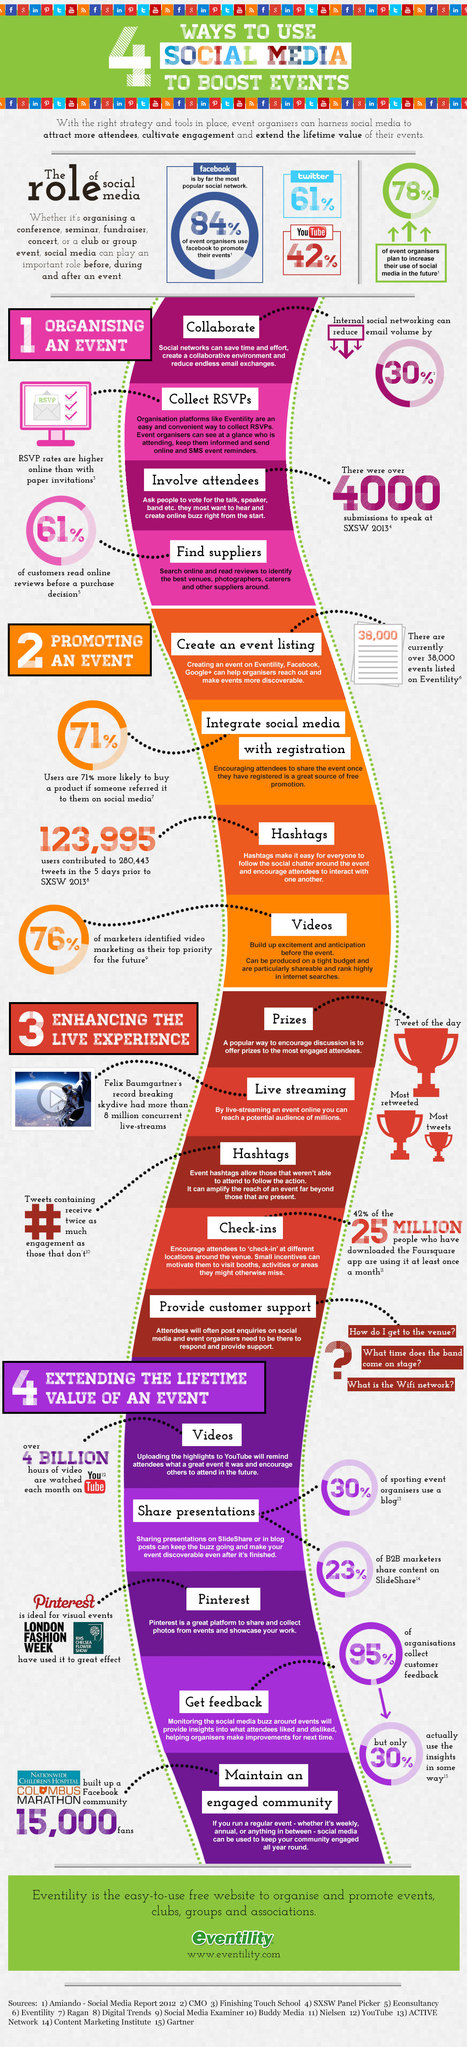 4 Incredibly Easy Ways to Use Social Media to Boost Events Infographic | The Twinkie Awards | Scoop.it